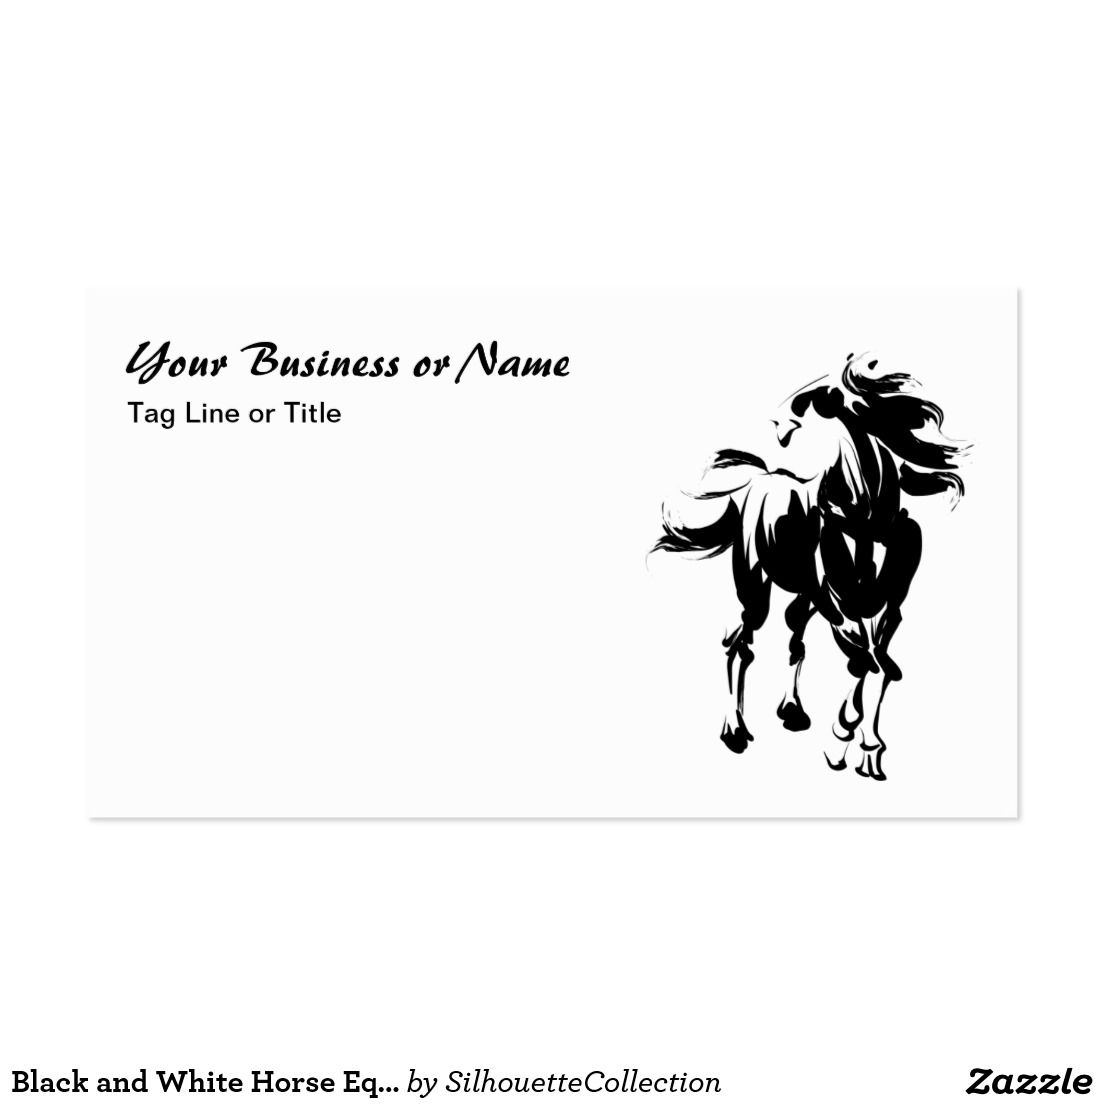 Black and White Horse Equestrian Business Card | Horses and Ponies ...